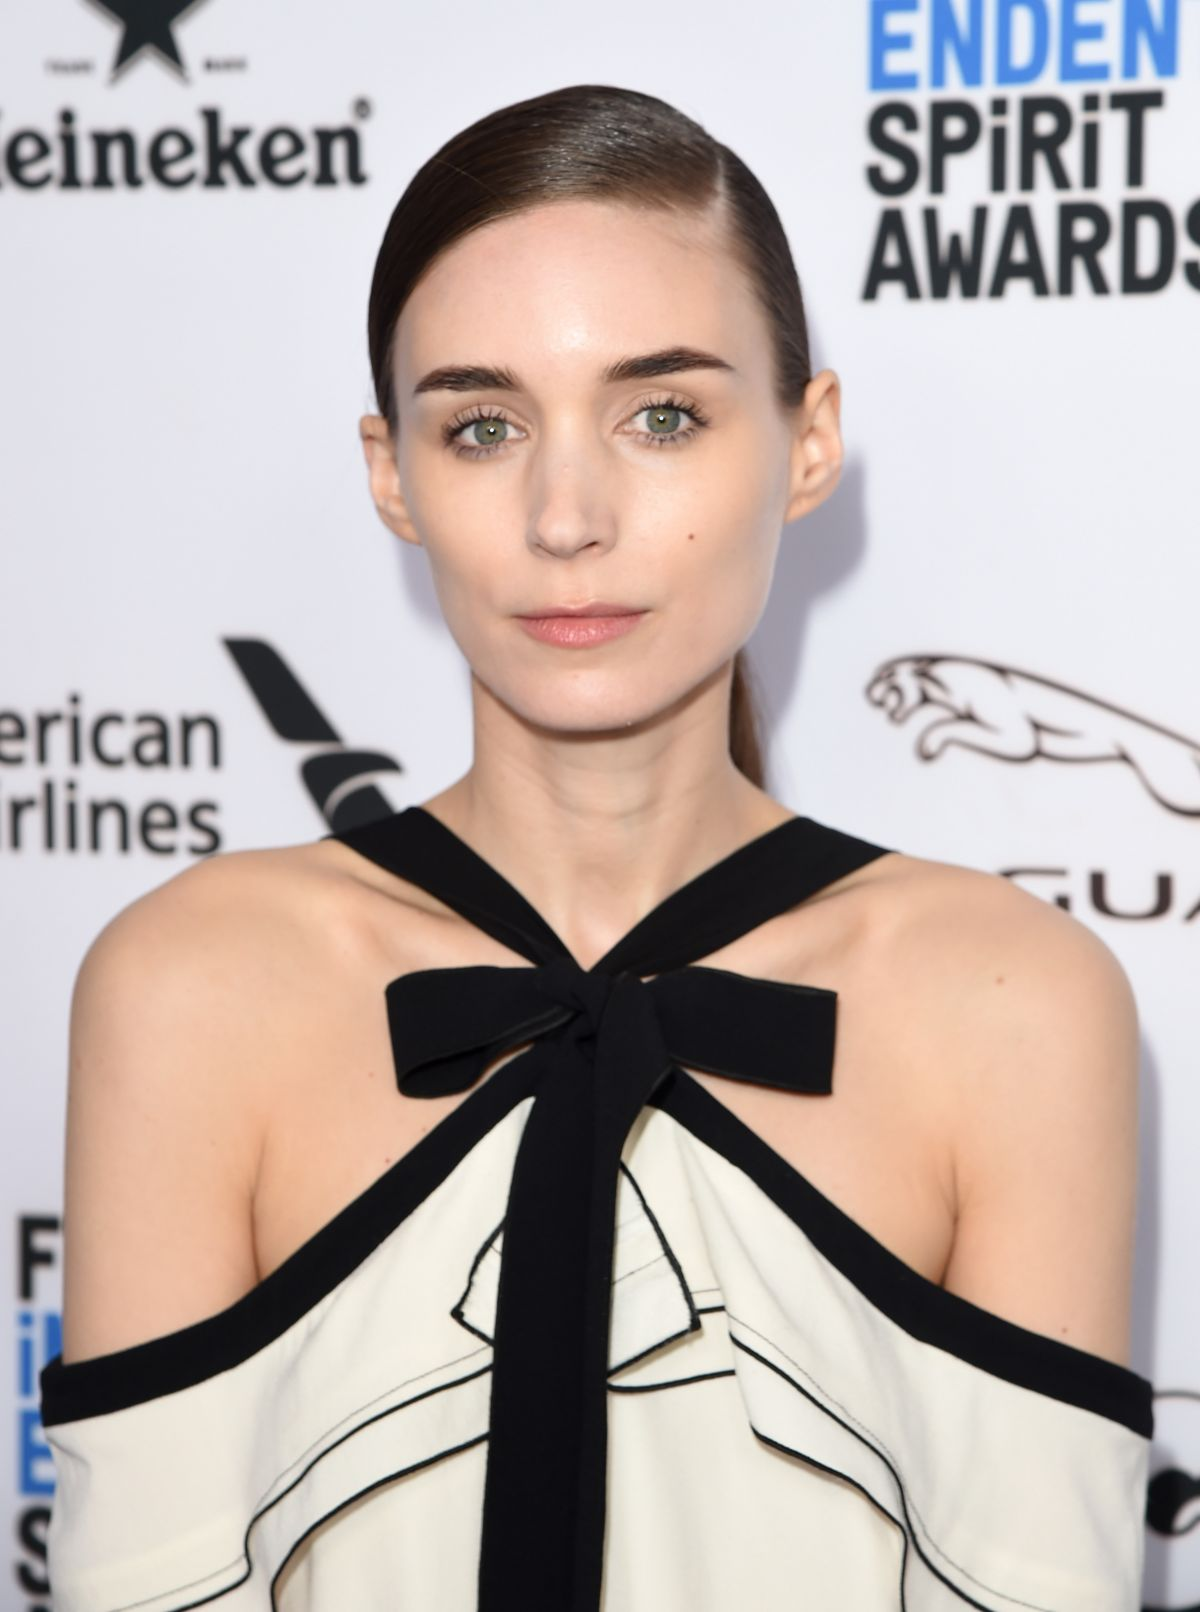 Rooney Mara At 2016 Film Independent Filmmaker Grant and Spirit Award Nominees Brunch